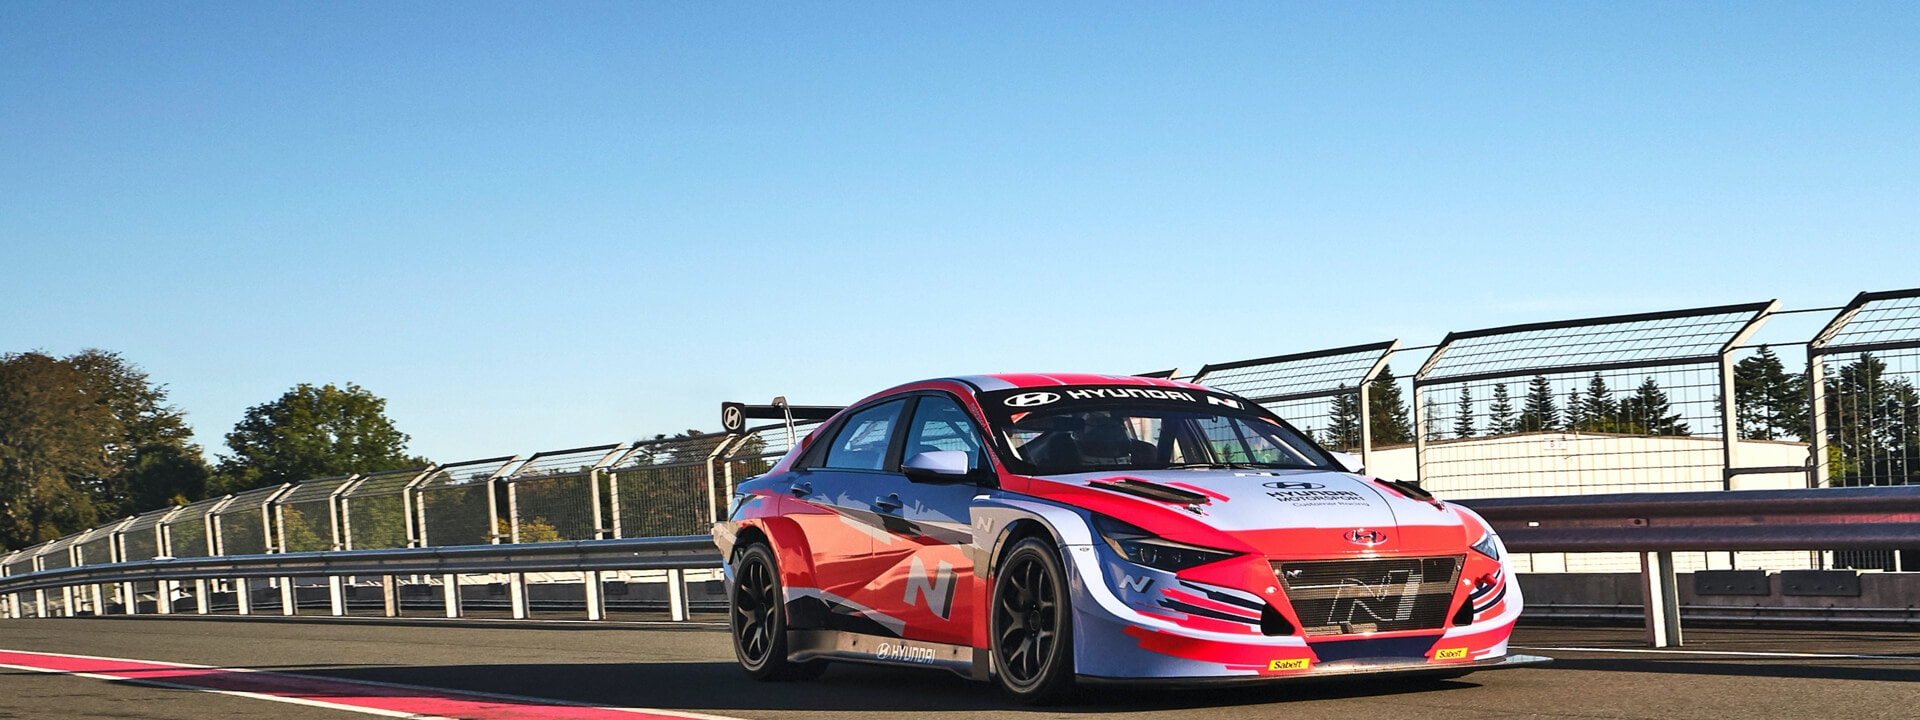 Hyundai Motorsport customer racing expands TCR range with Elantra N TCR.